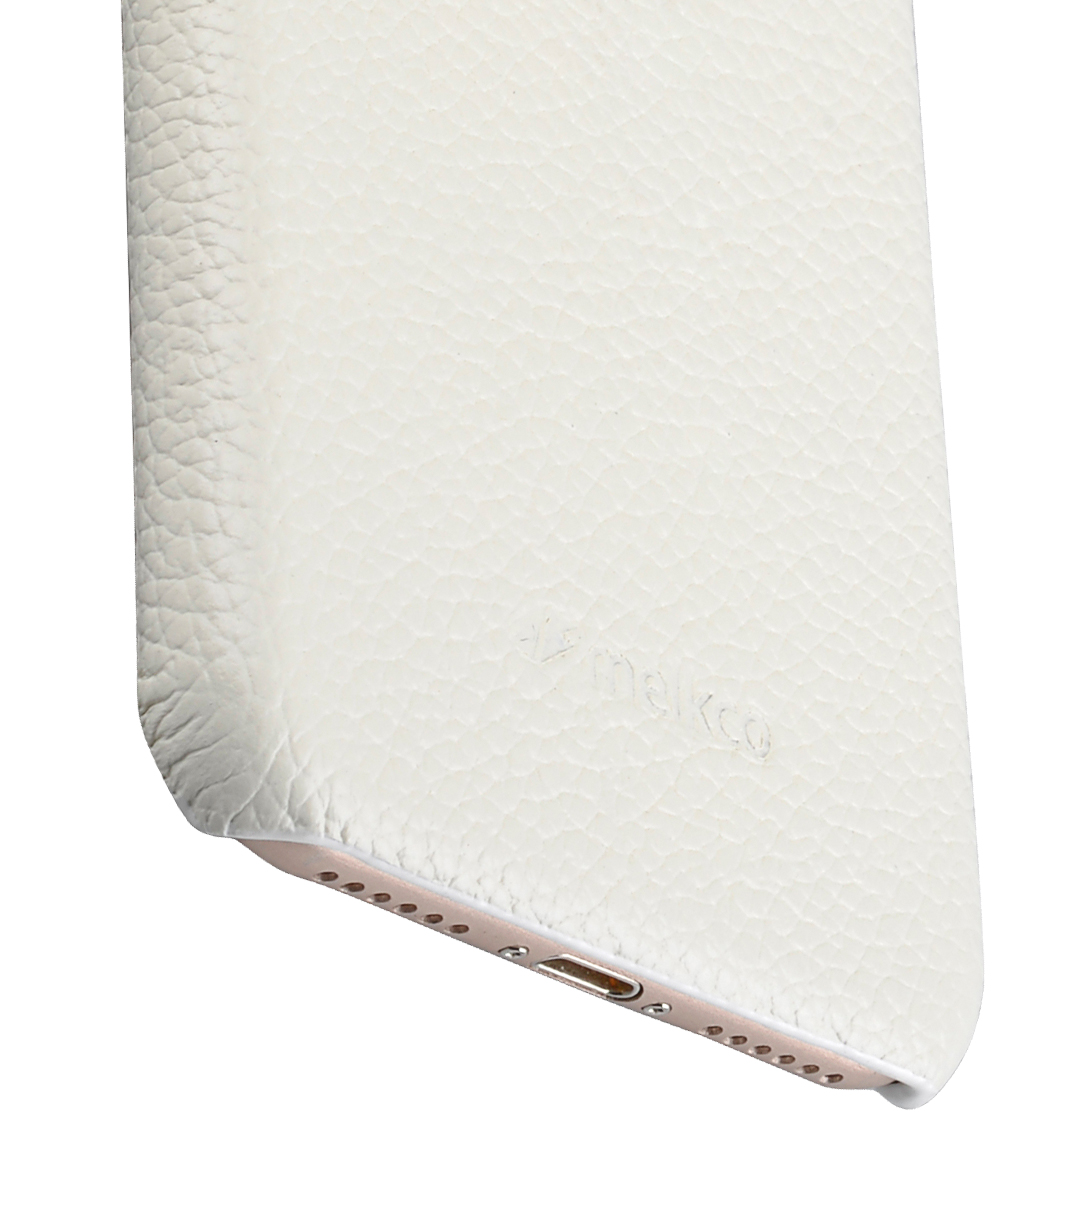 """Melkco Premium Leather Snap Cover for Apple iPhone 7 / 8 (4.7"""")- White LC"""